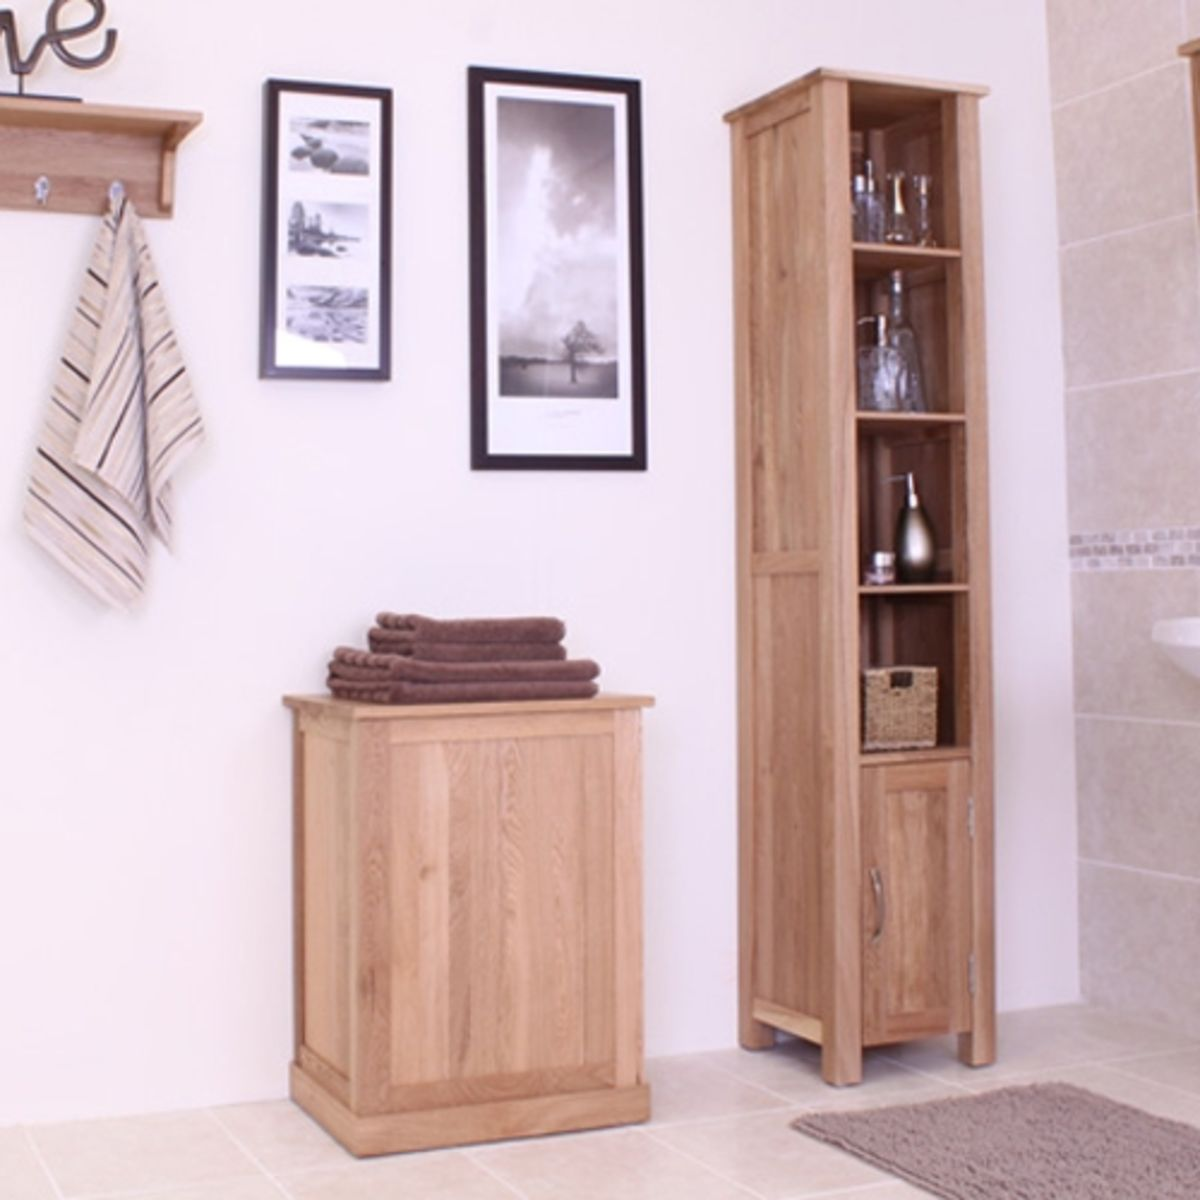 Mobel light oak laundry bin wooden furniture store for Design sale mobel